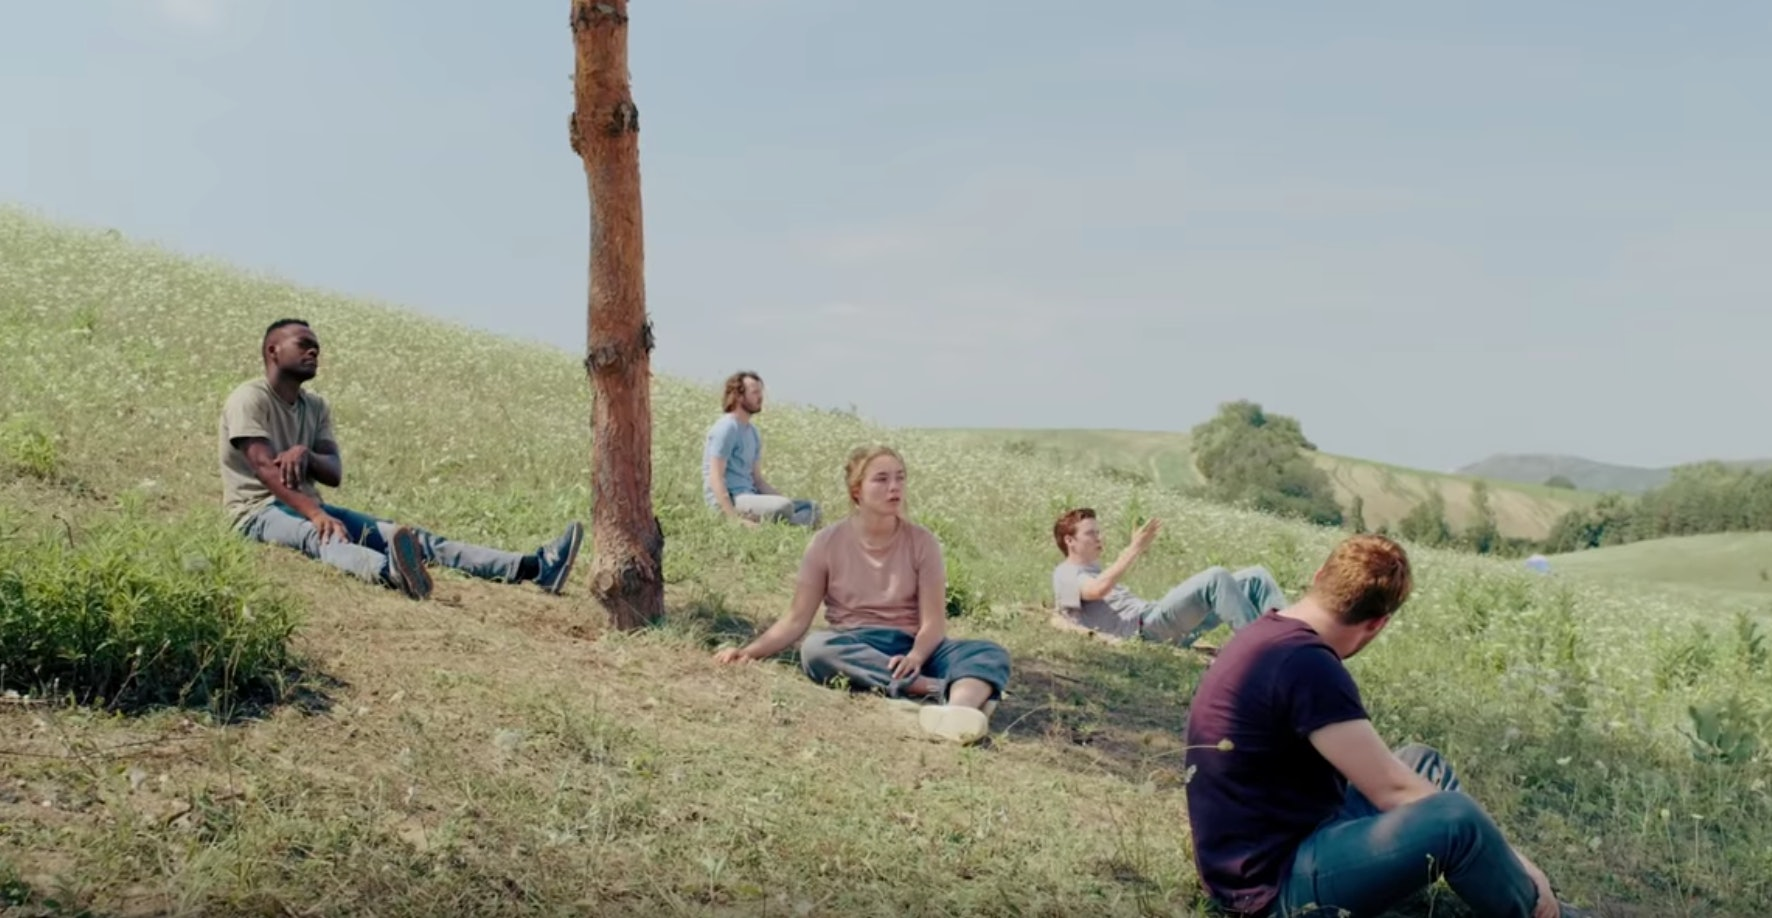 Where Was 'Midsommar' Filmed? The Rustic Swedish Village Was ...